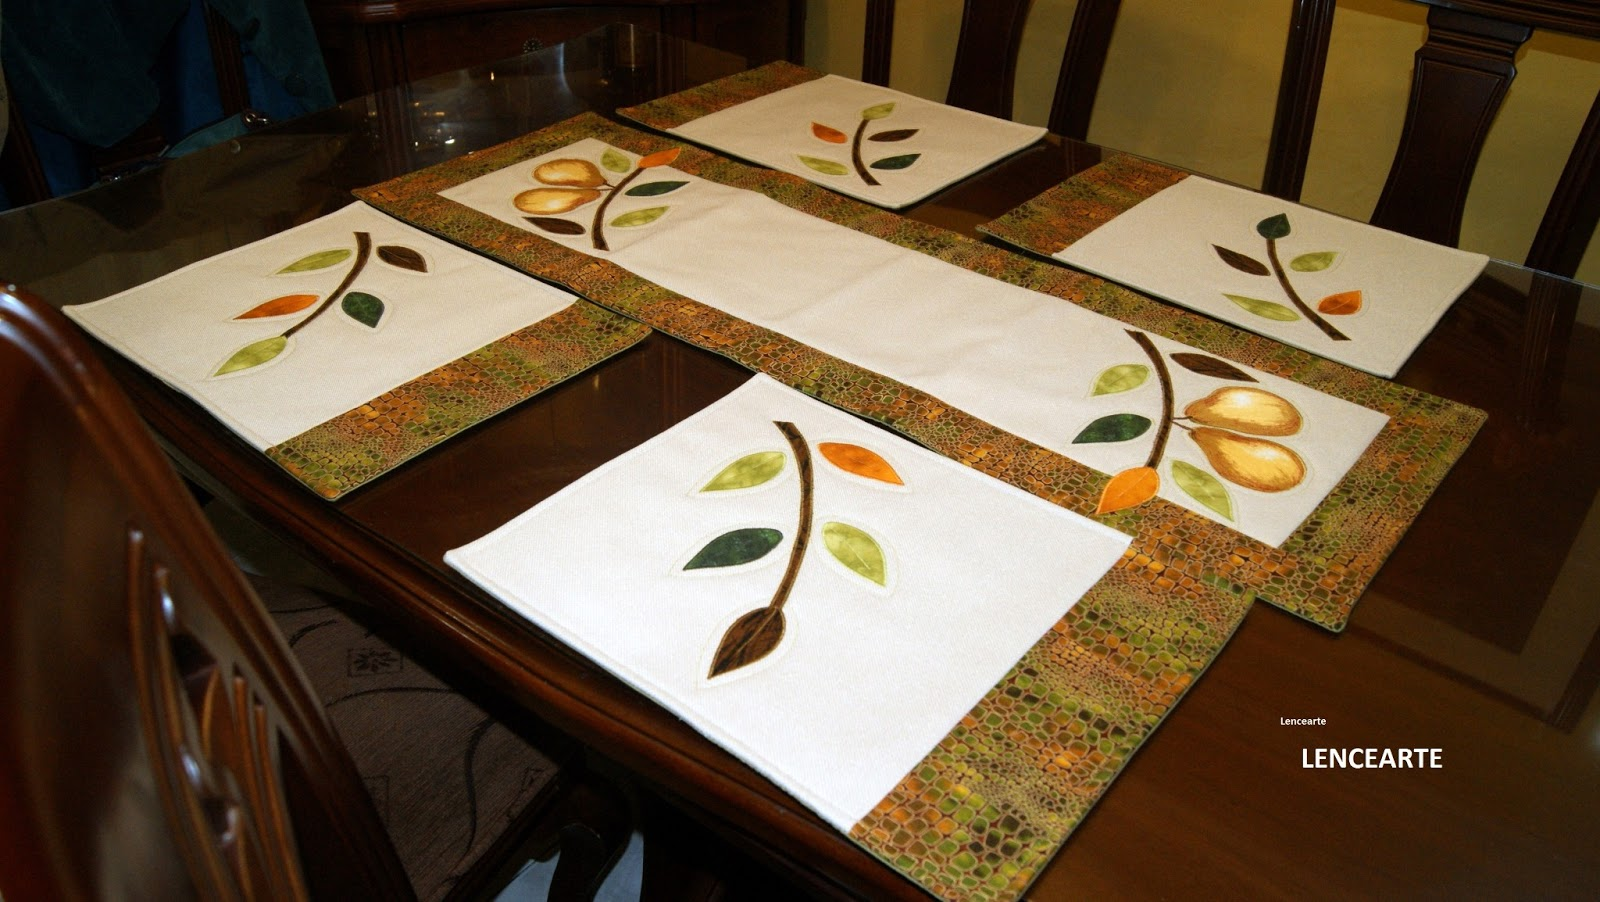 lencearte individuales y caminos de mesa placemats and